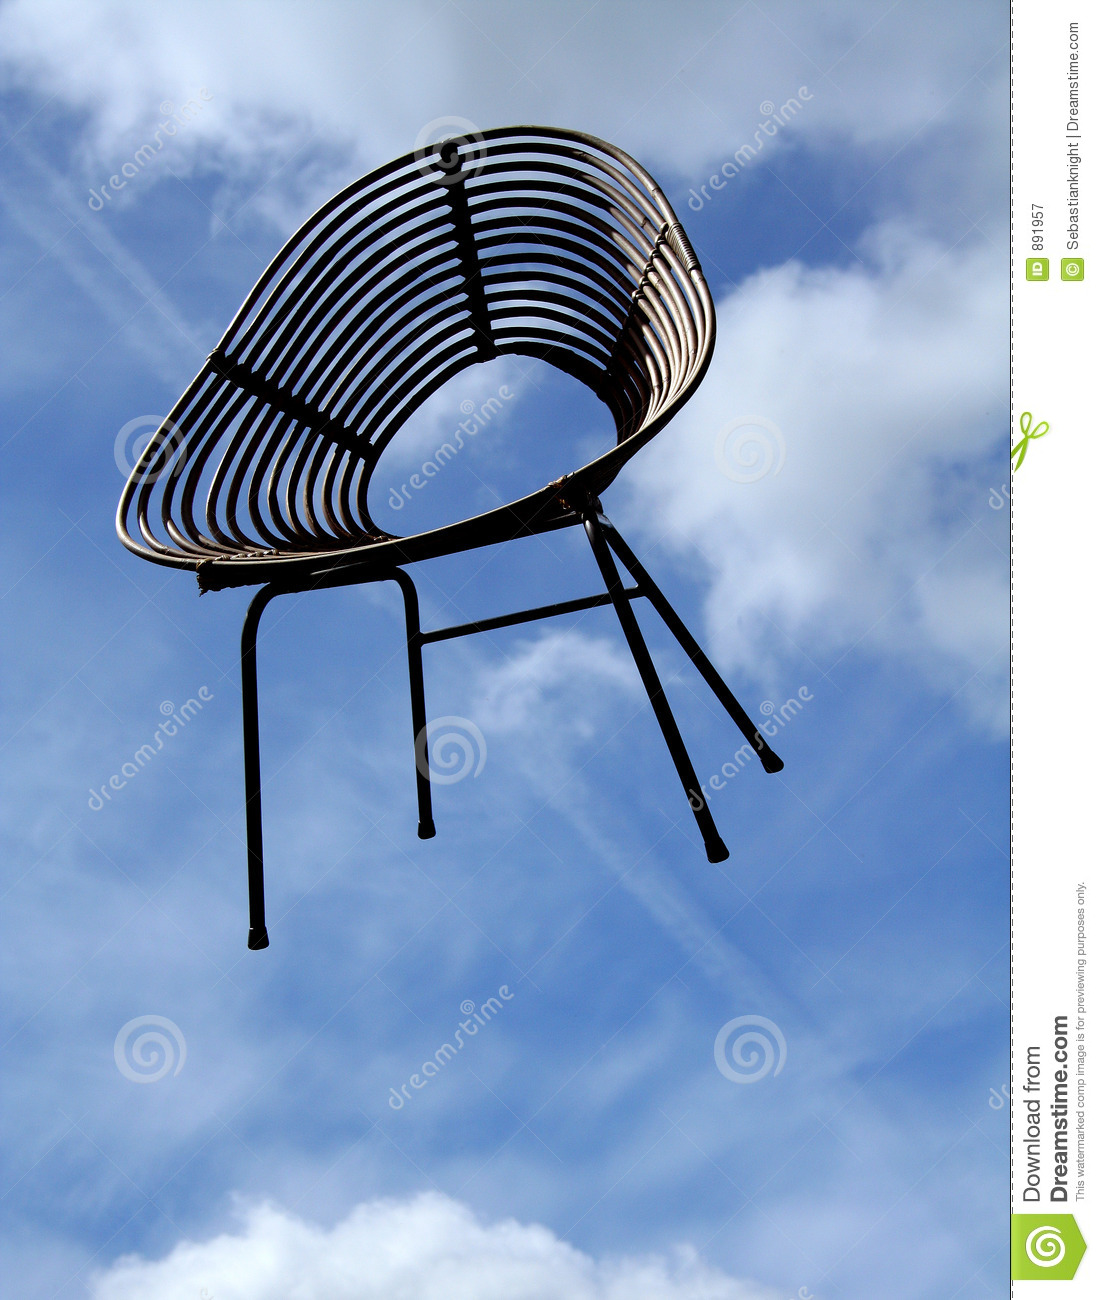 Flying Chair Royalty Free Stock Photography - Image: 891957